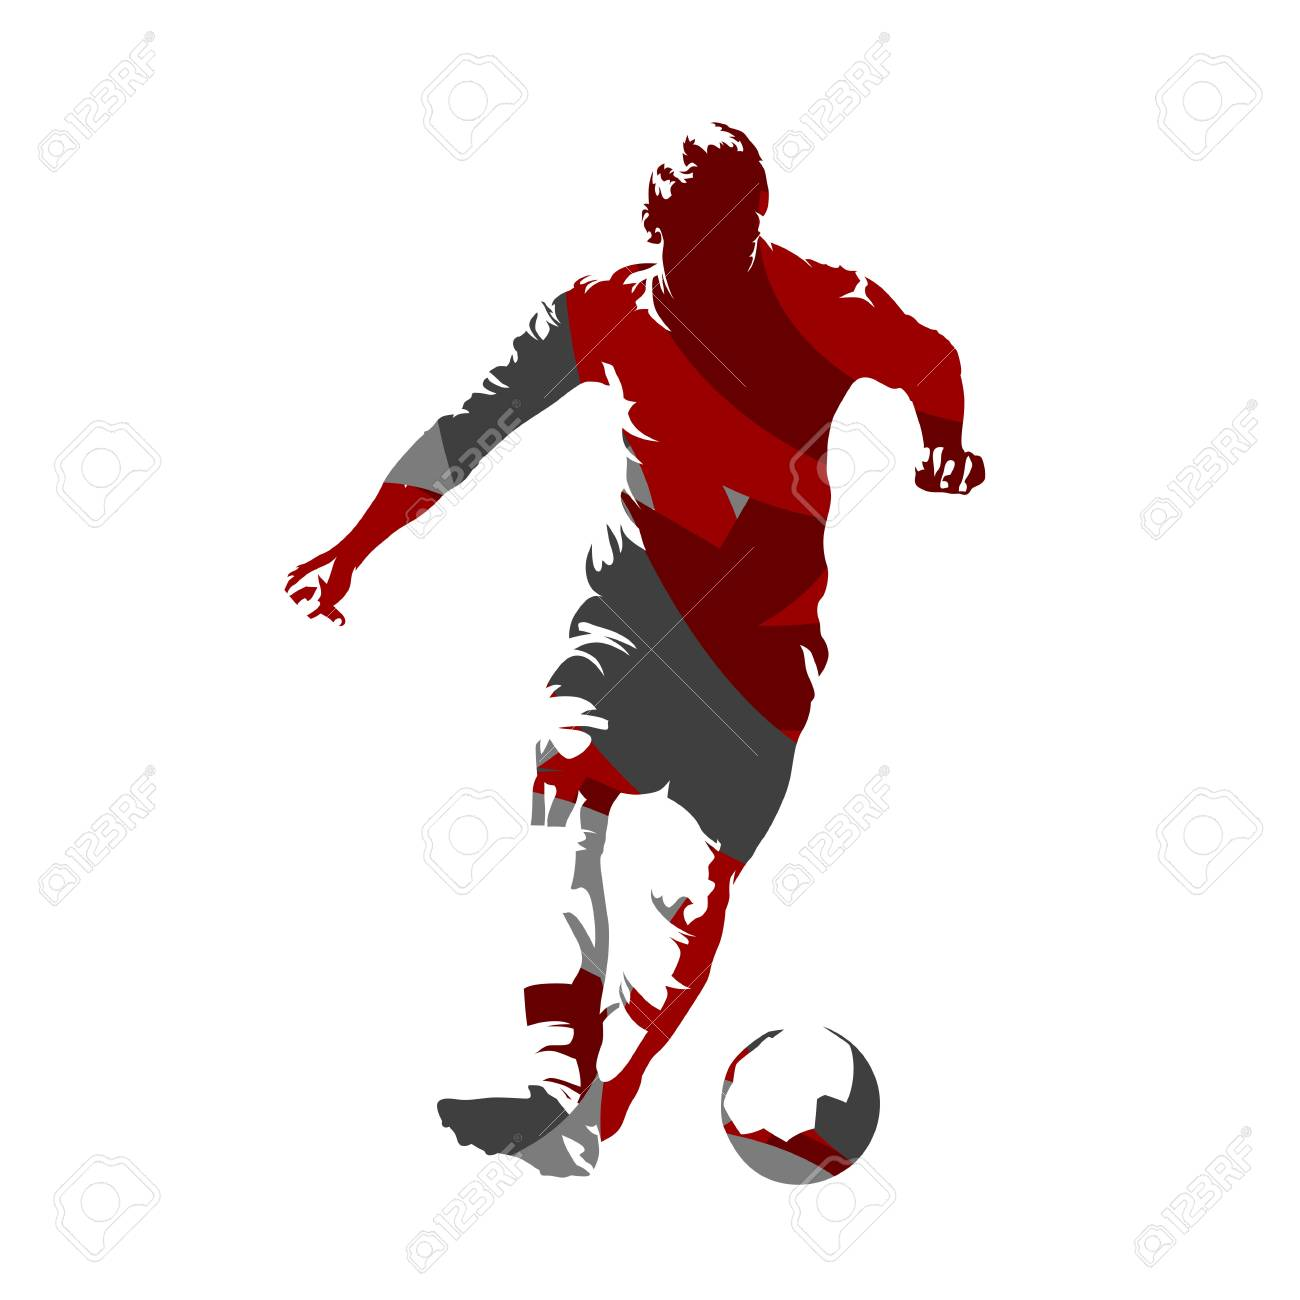 Soccer Player With Ball Abstract Vector Silhouette Royalty Free